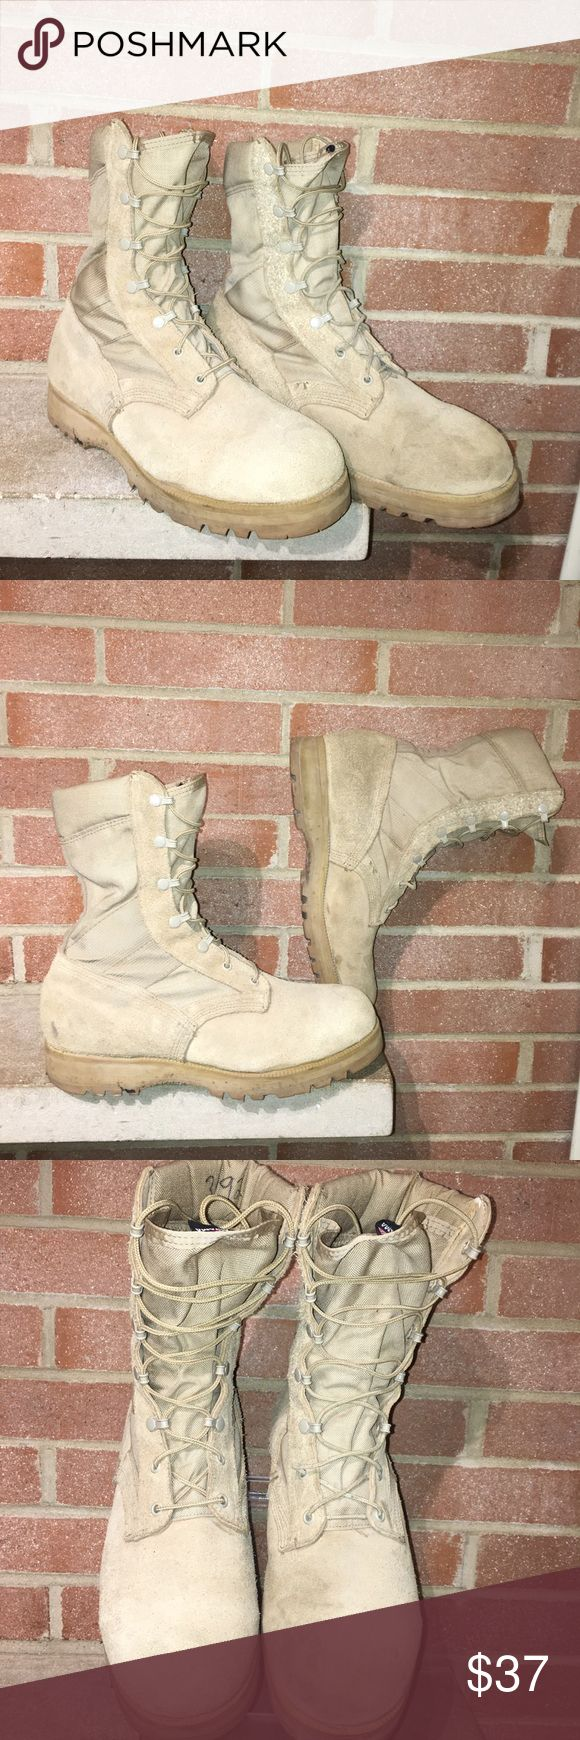 Men's Altman's US Military combat boots size 10W Men's Altman's US Military combat boots size 10W Tan Fast Shipping Made in USA Altama Shoes Boots